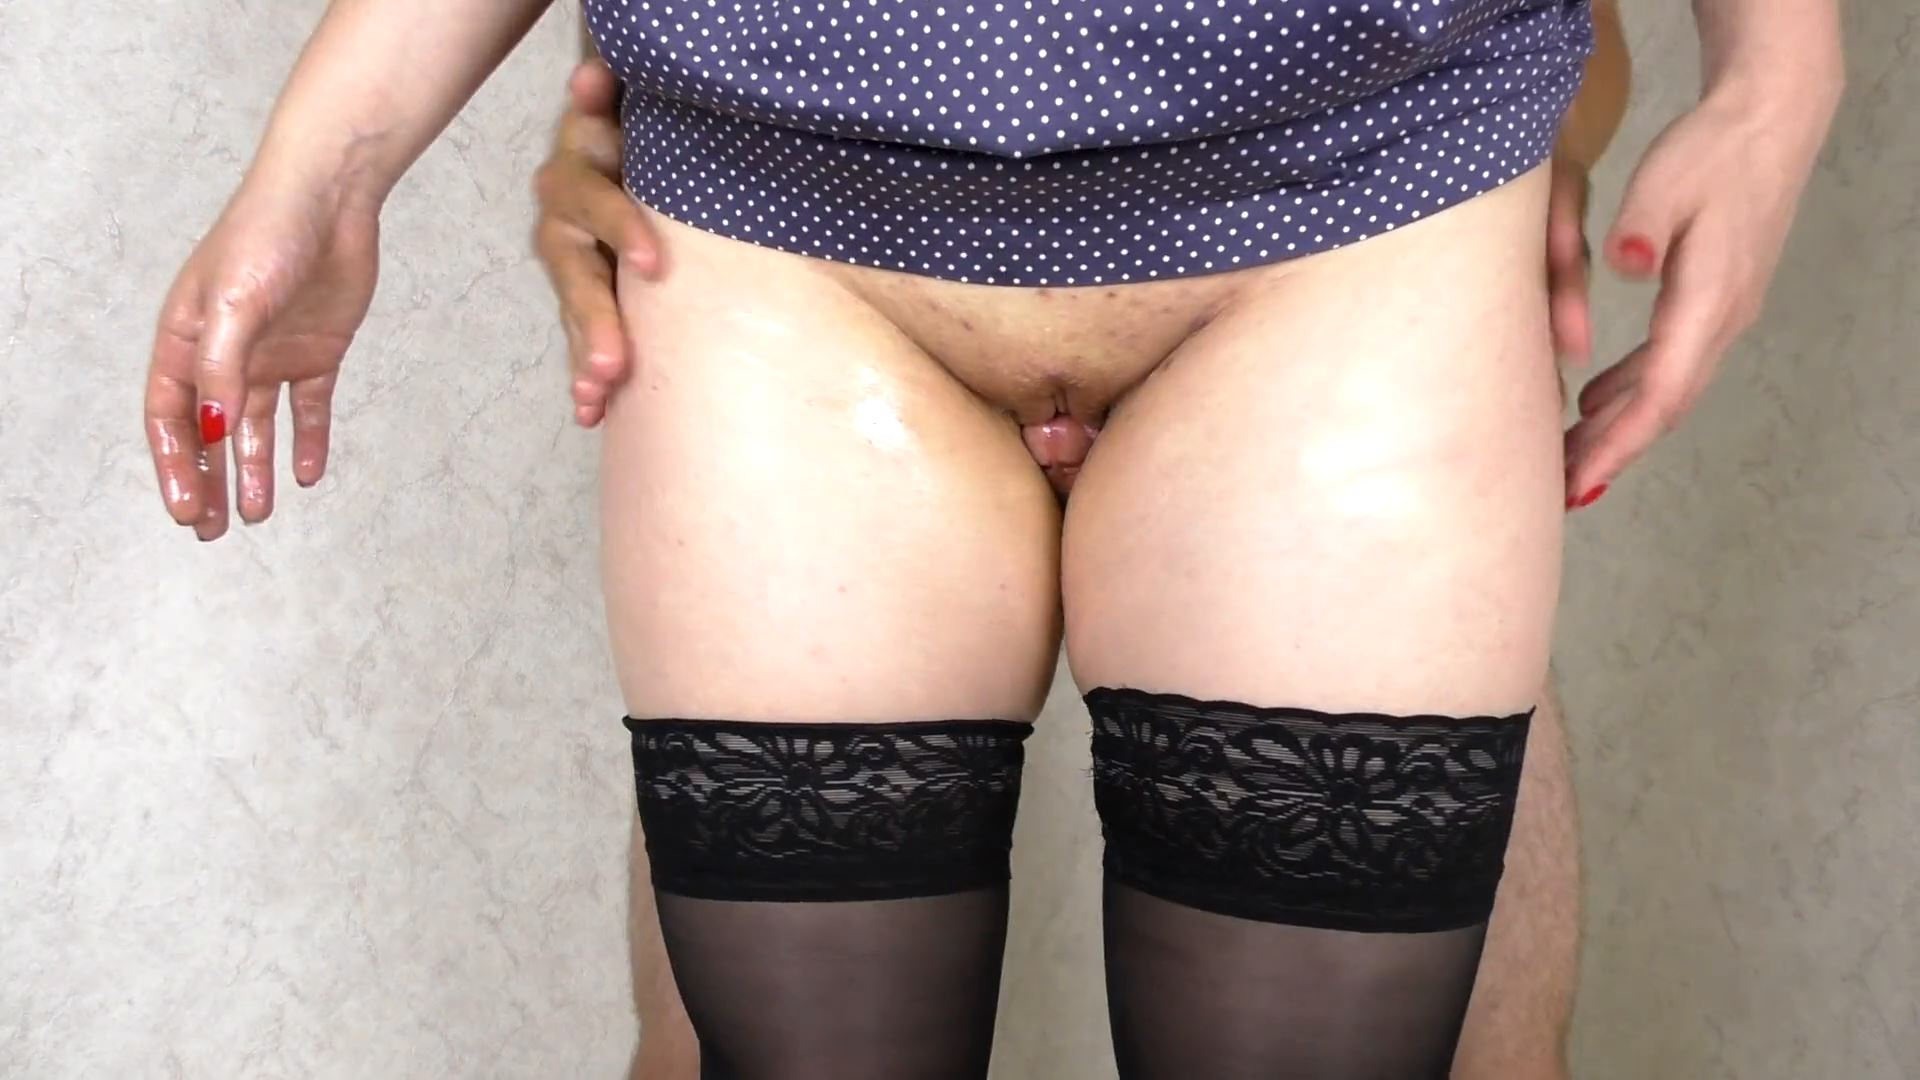 Step Sister Assjob Pussyjob And Cum On My Legs In Stockings